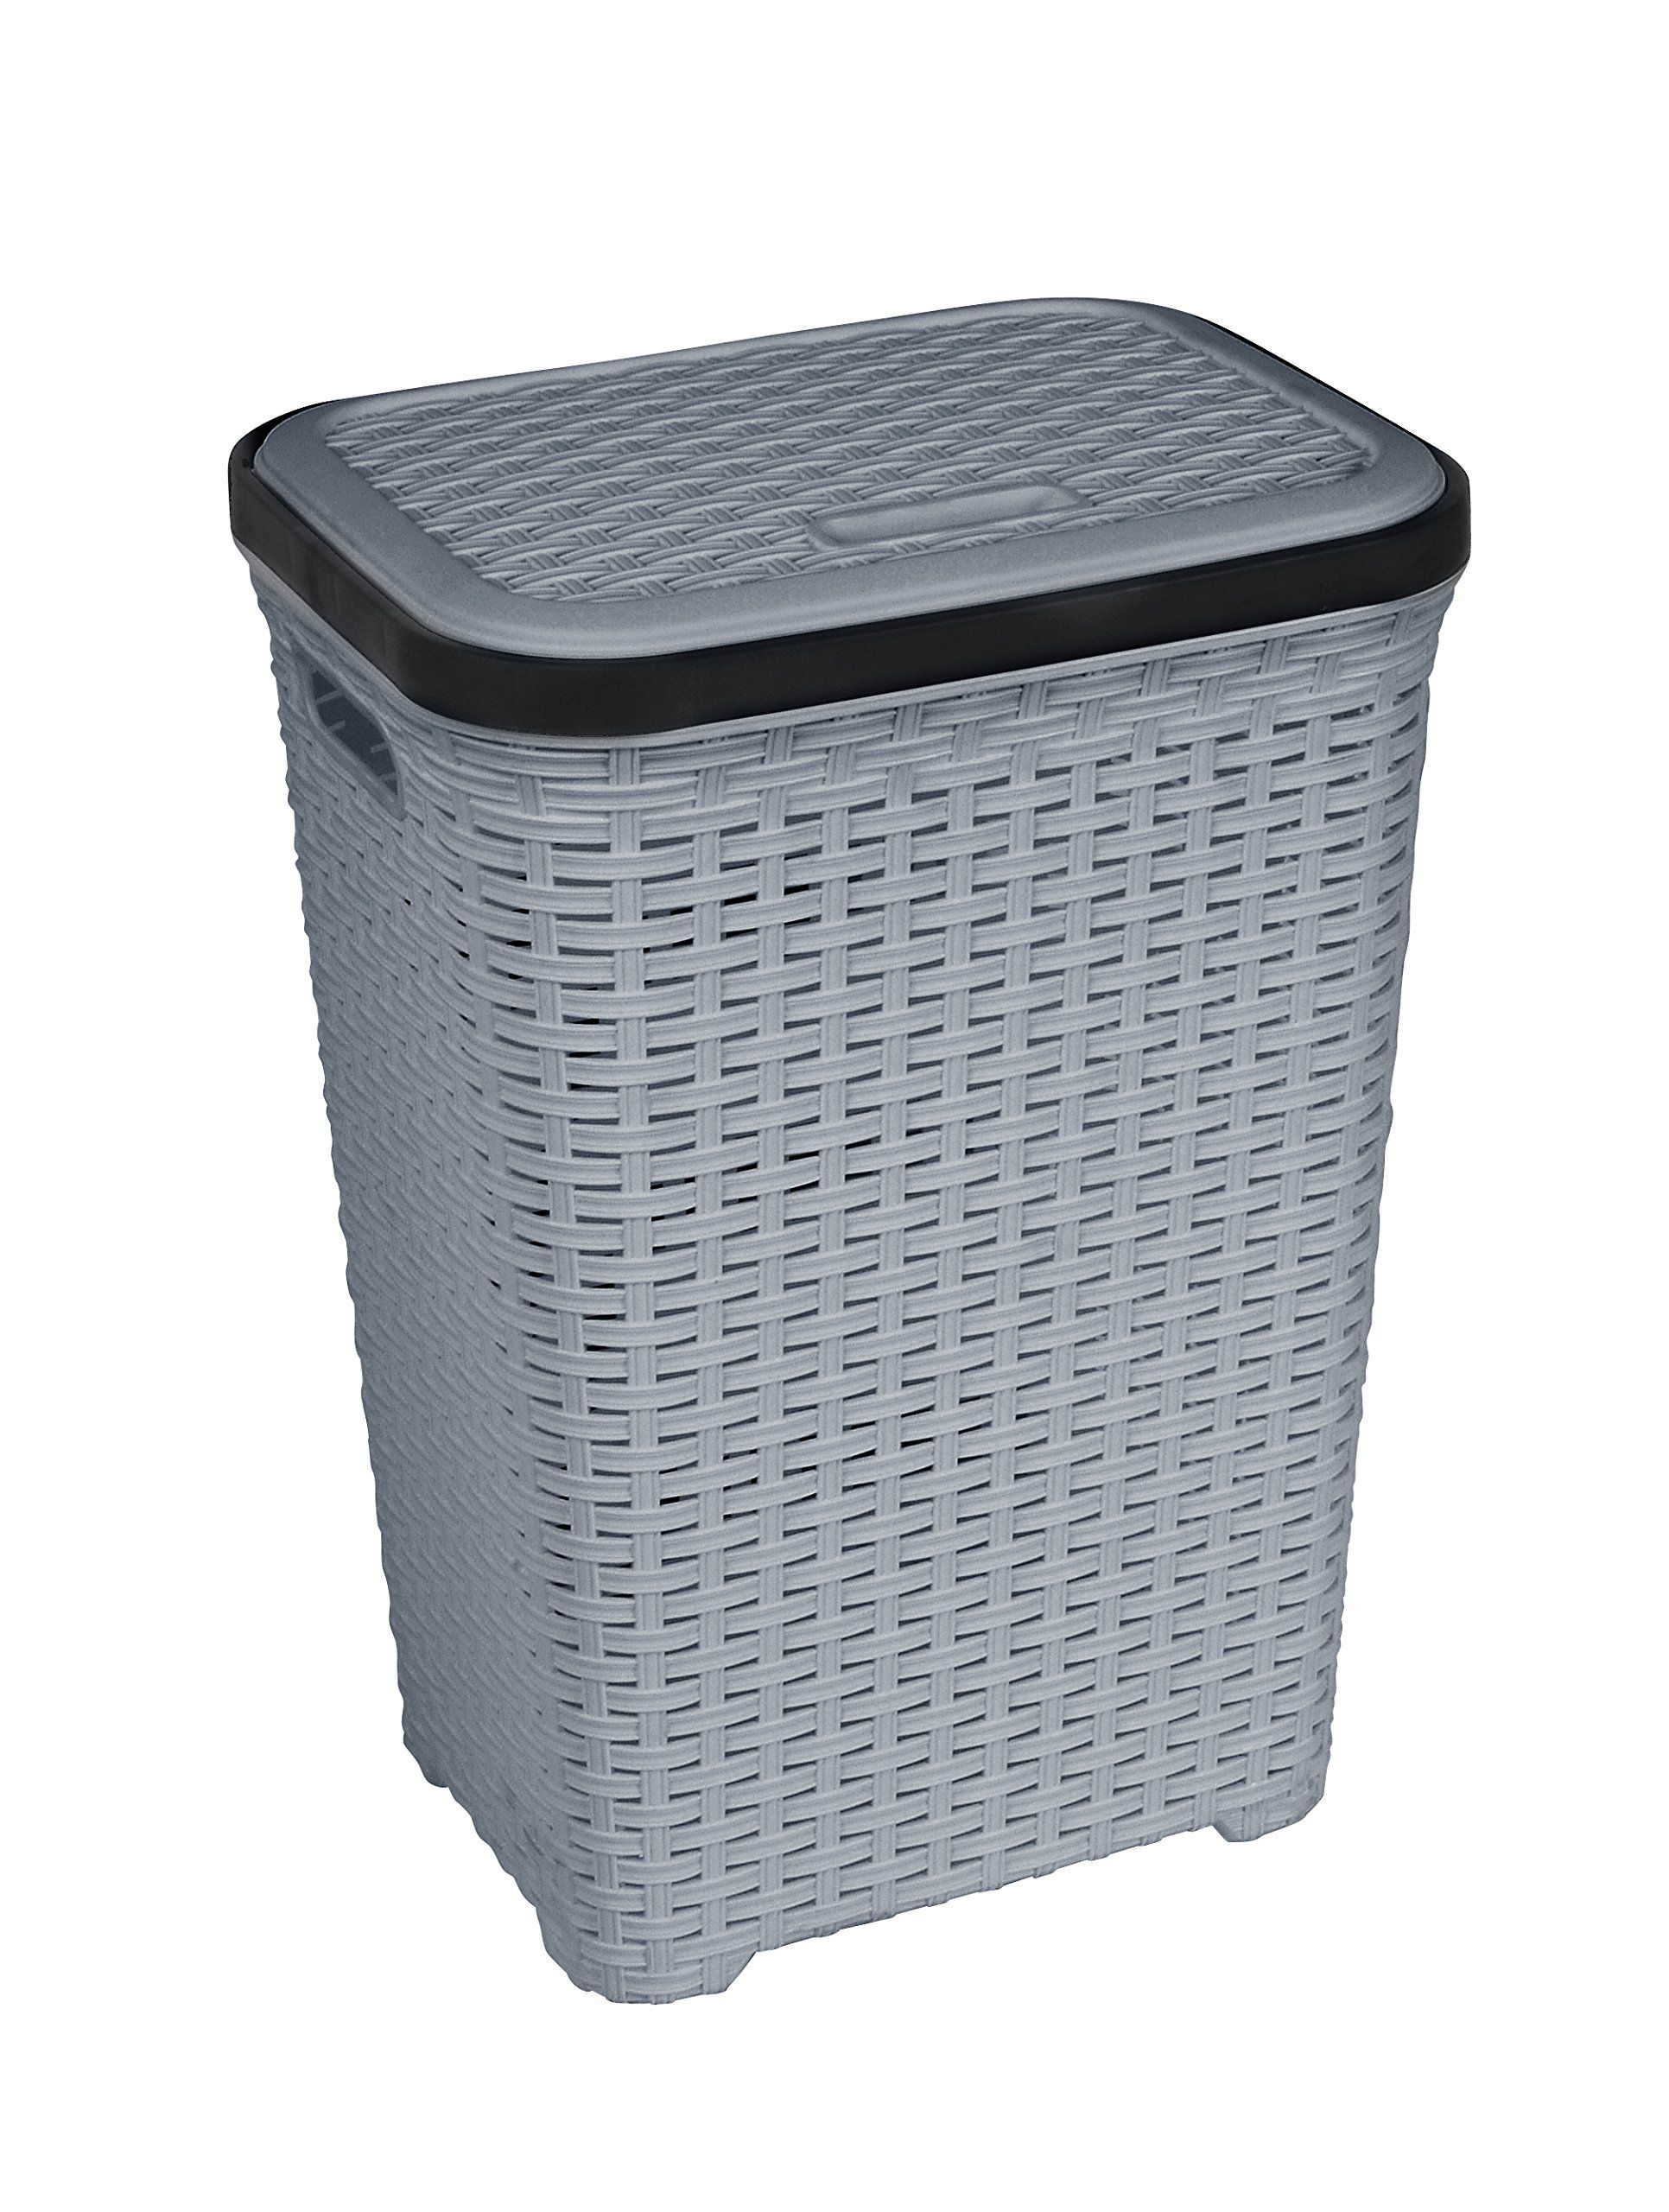 Rattan (Wicker Style) 1.7 Bushel Laundry Hamper (Grey Base and Black ...